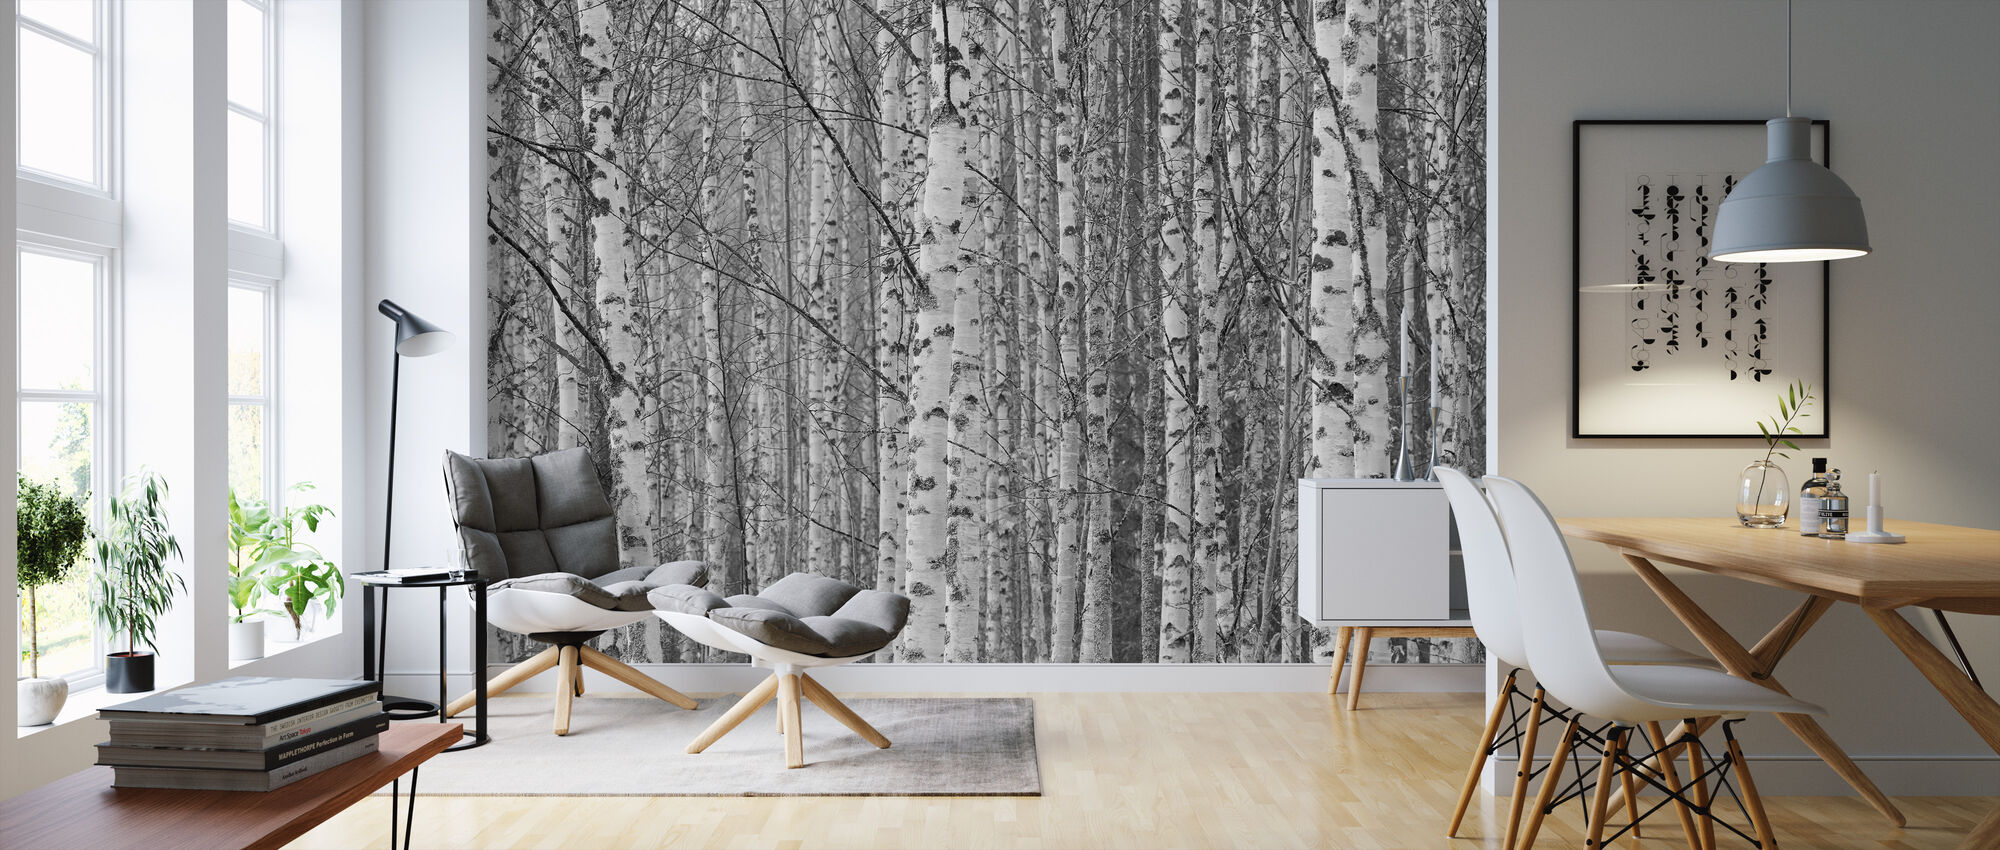 Gotland Birch Forest - Wallpaper - Living Room